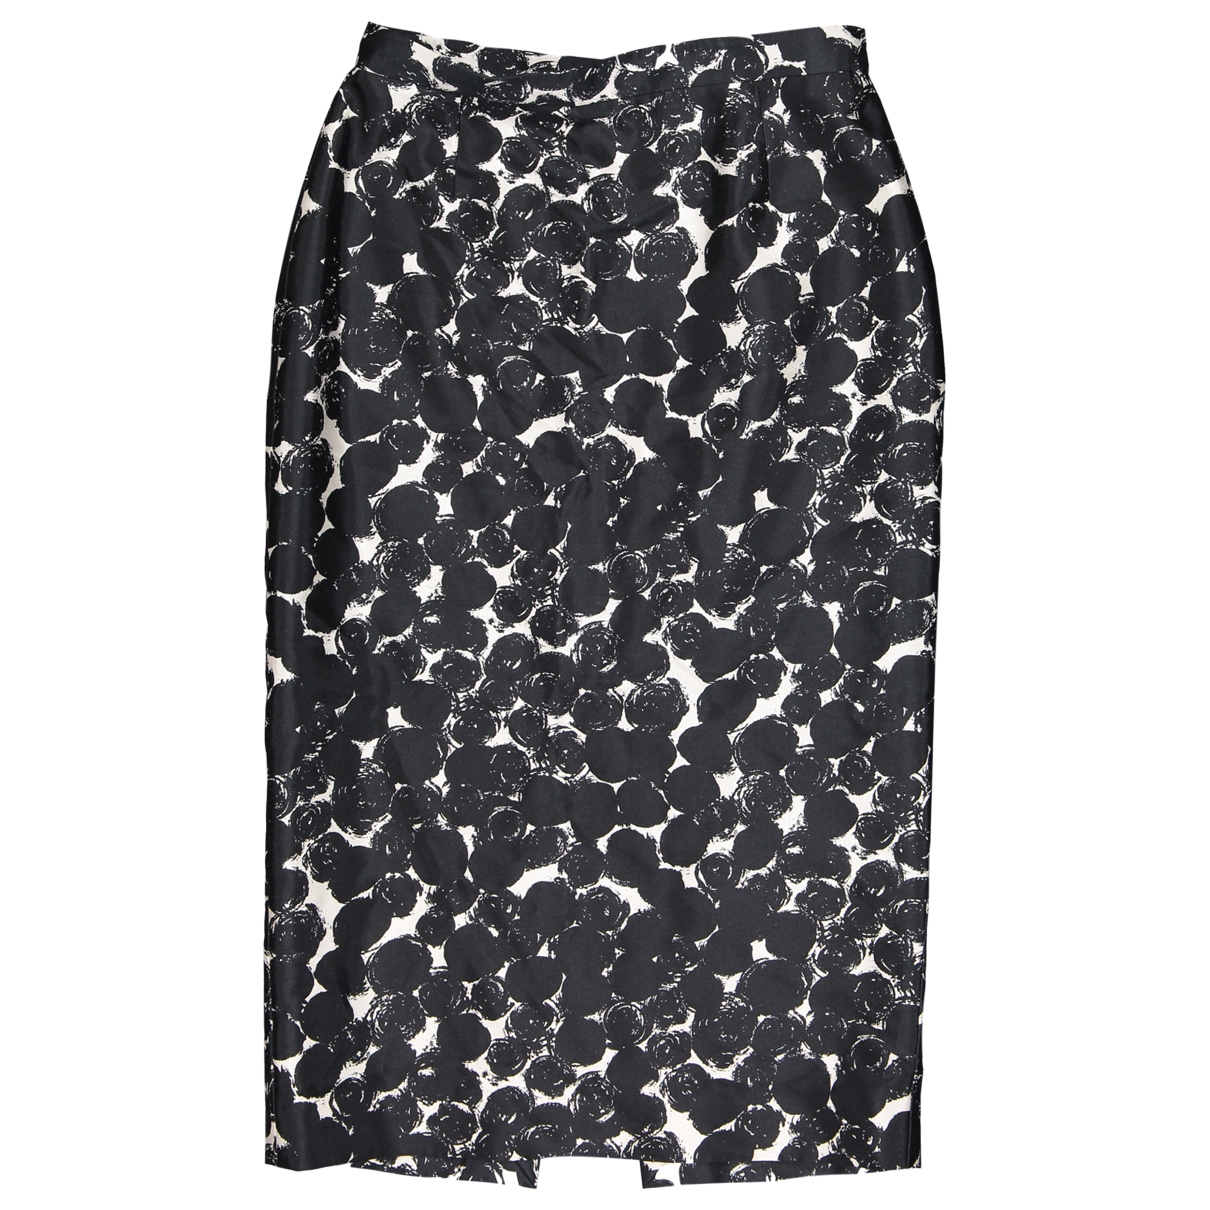 Celine \N Black Wool skirt for Women 40 FR